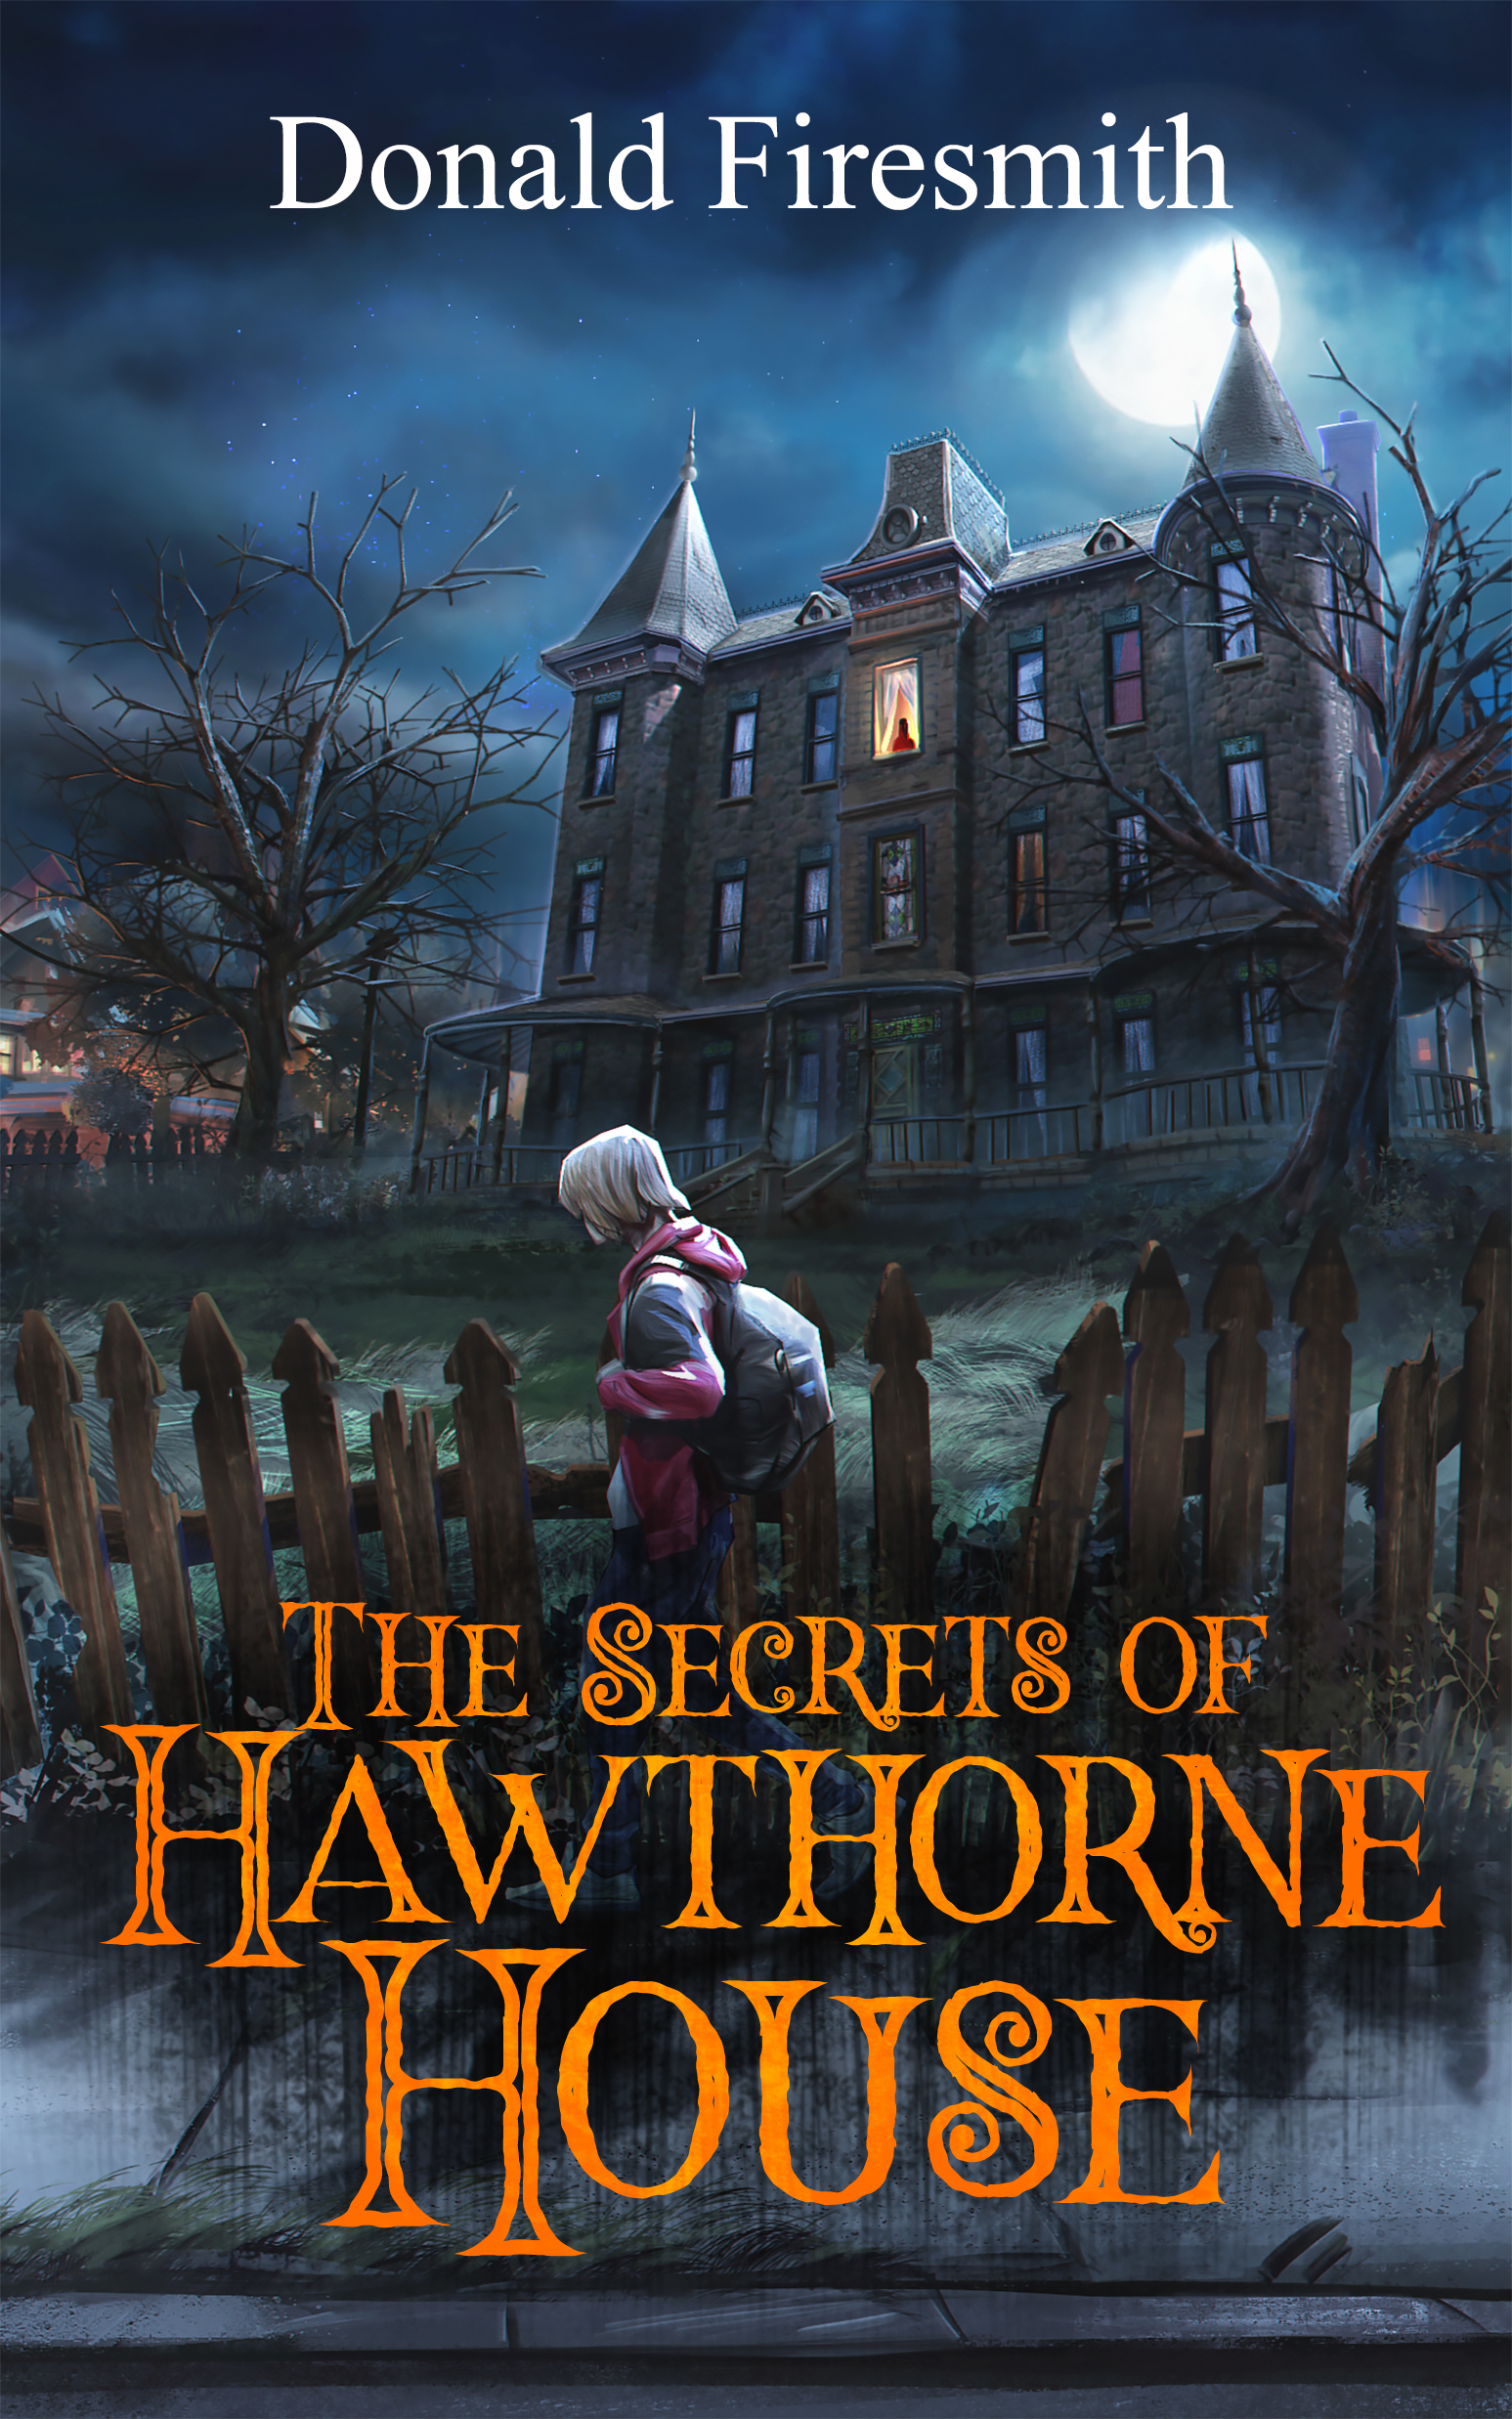 The Front Cover of The Secrets of Hawthorne House